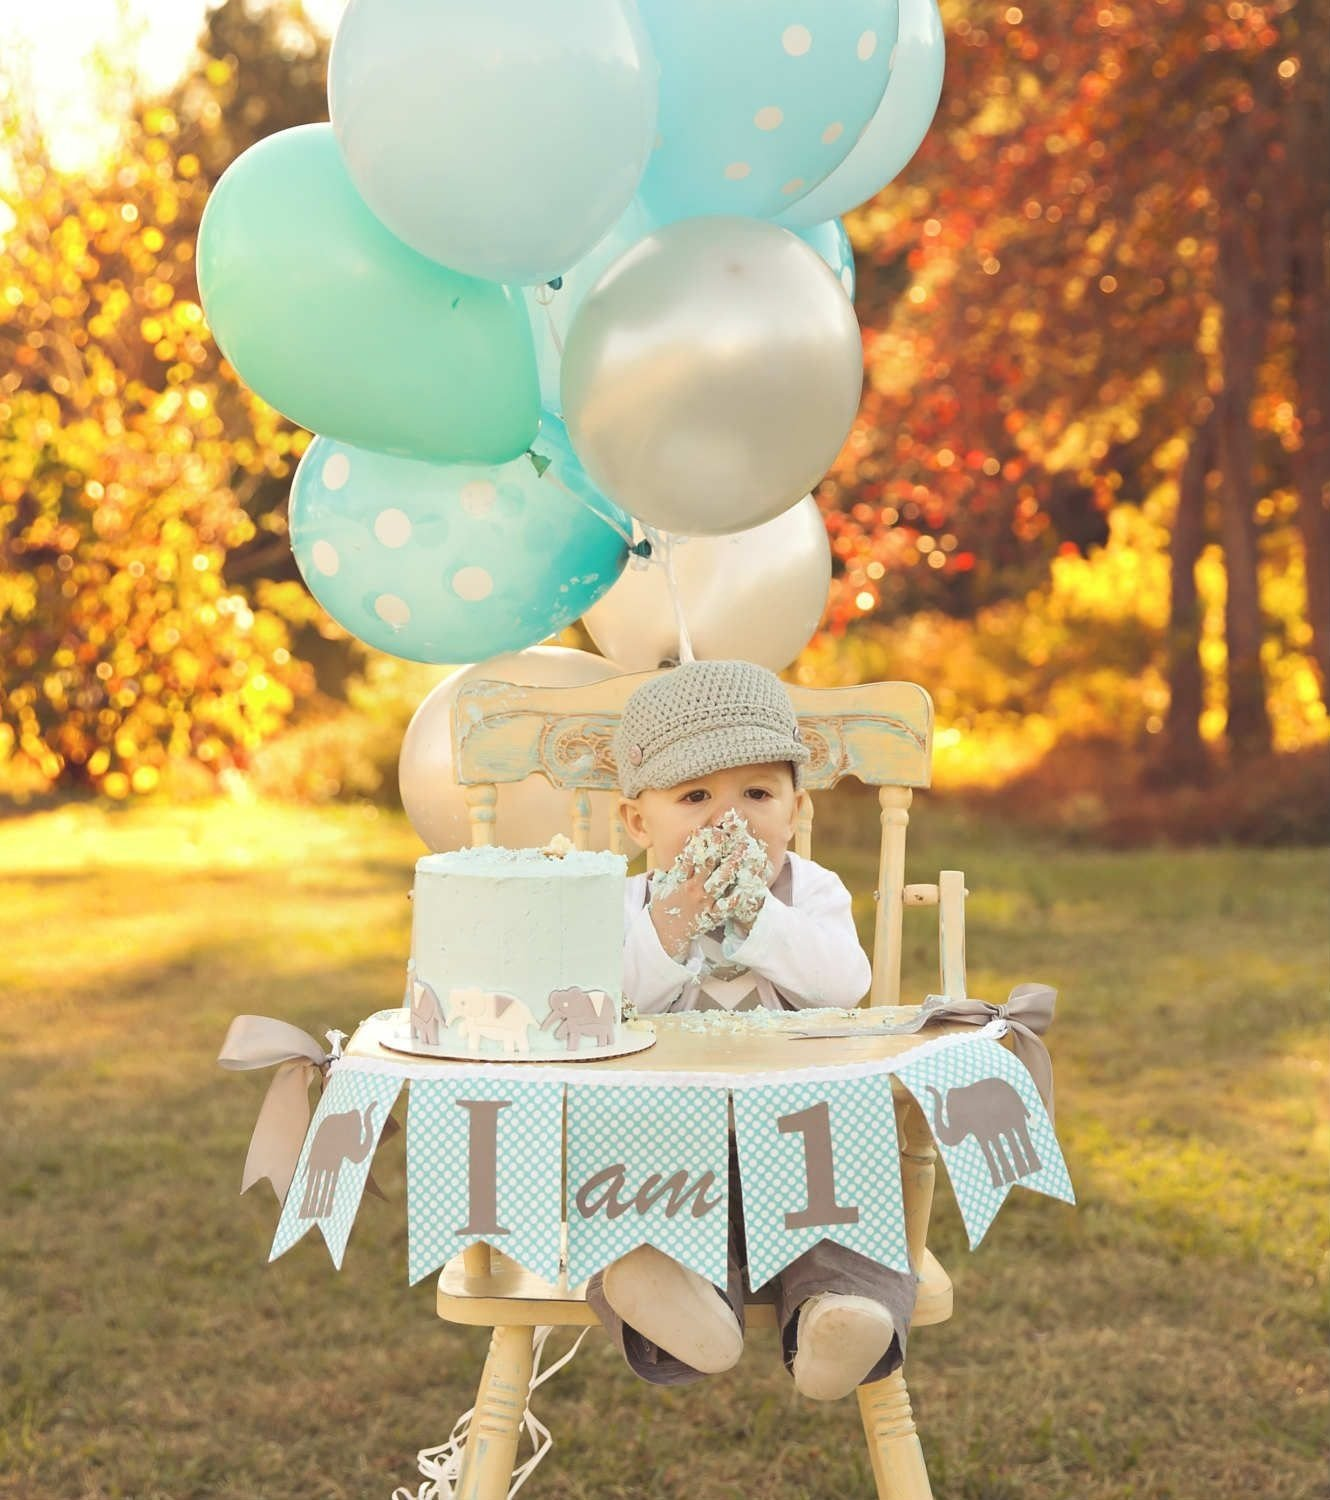 10 Great Ideas For 1St Birthday Pictures 10 1st birthday party ideas for boys part 2 birthday decorations 16 2020